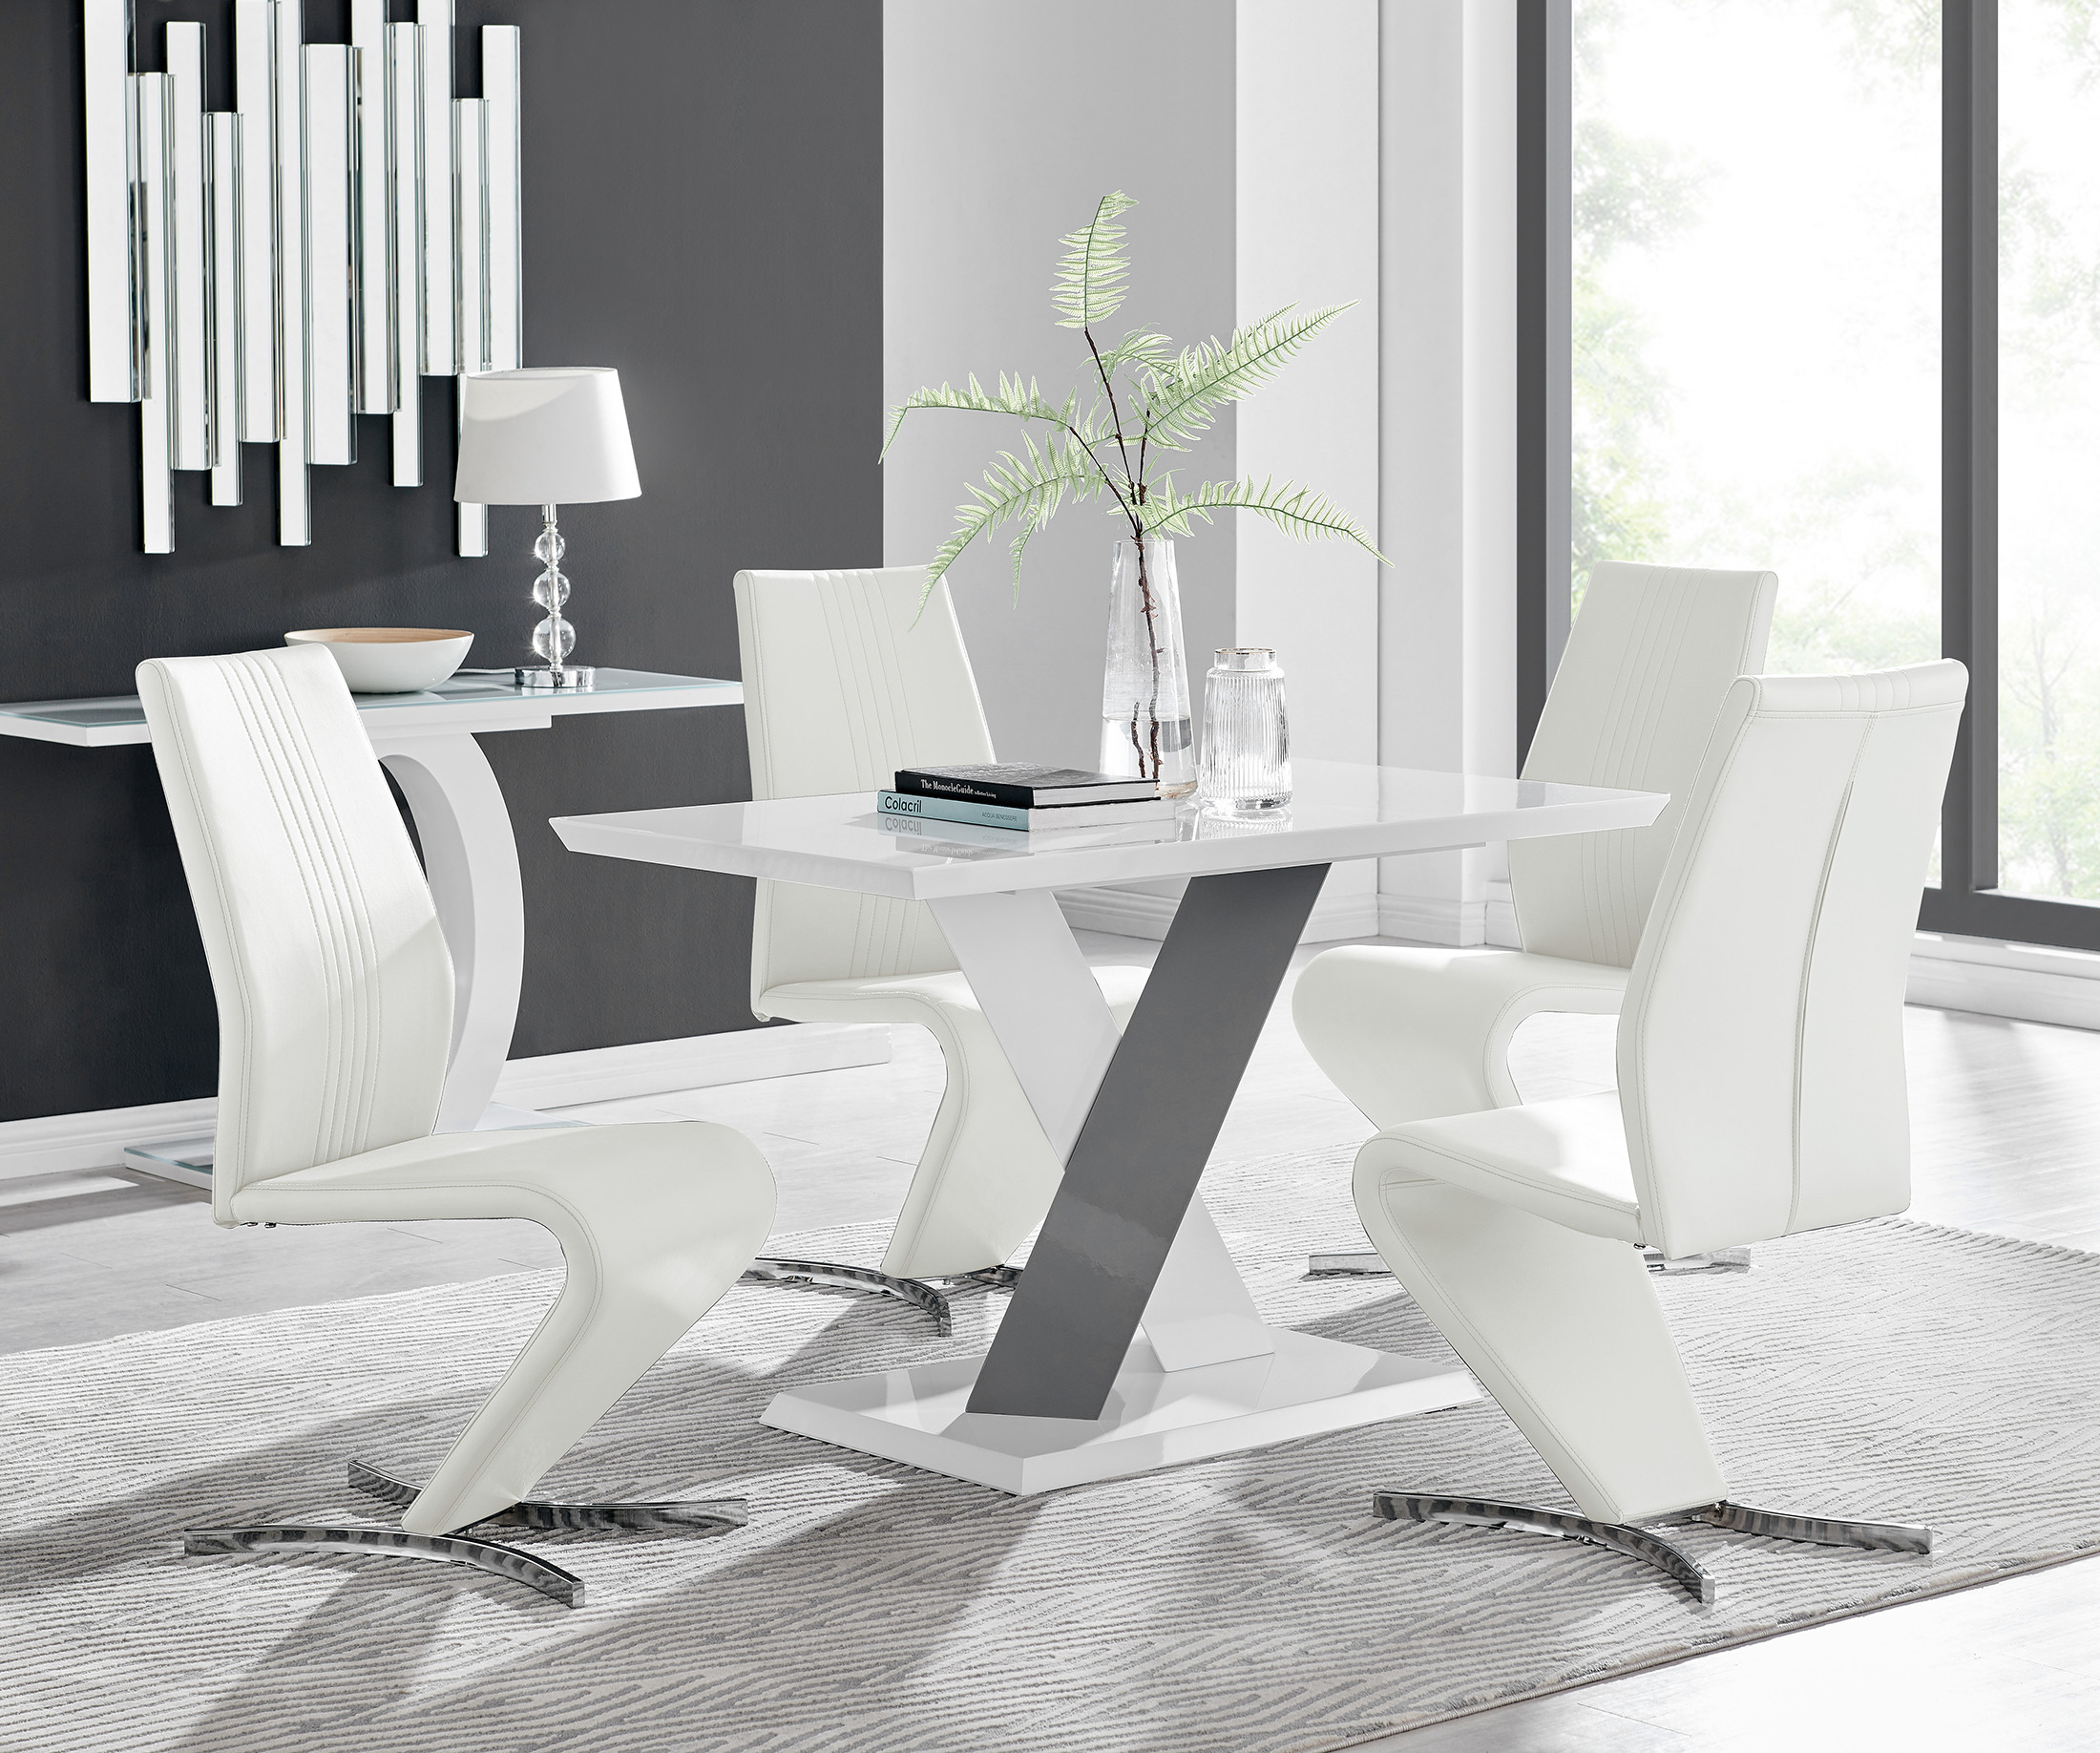 Monza 4 White/grey Dining Table & 4 Willow Chairs Intended For Monza Tv Stands (View 11 of 20)